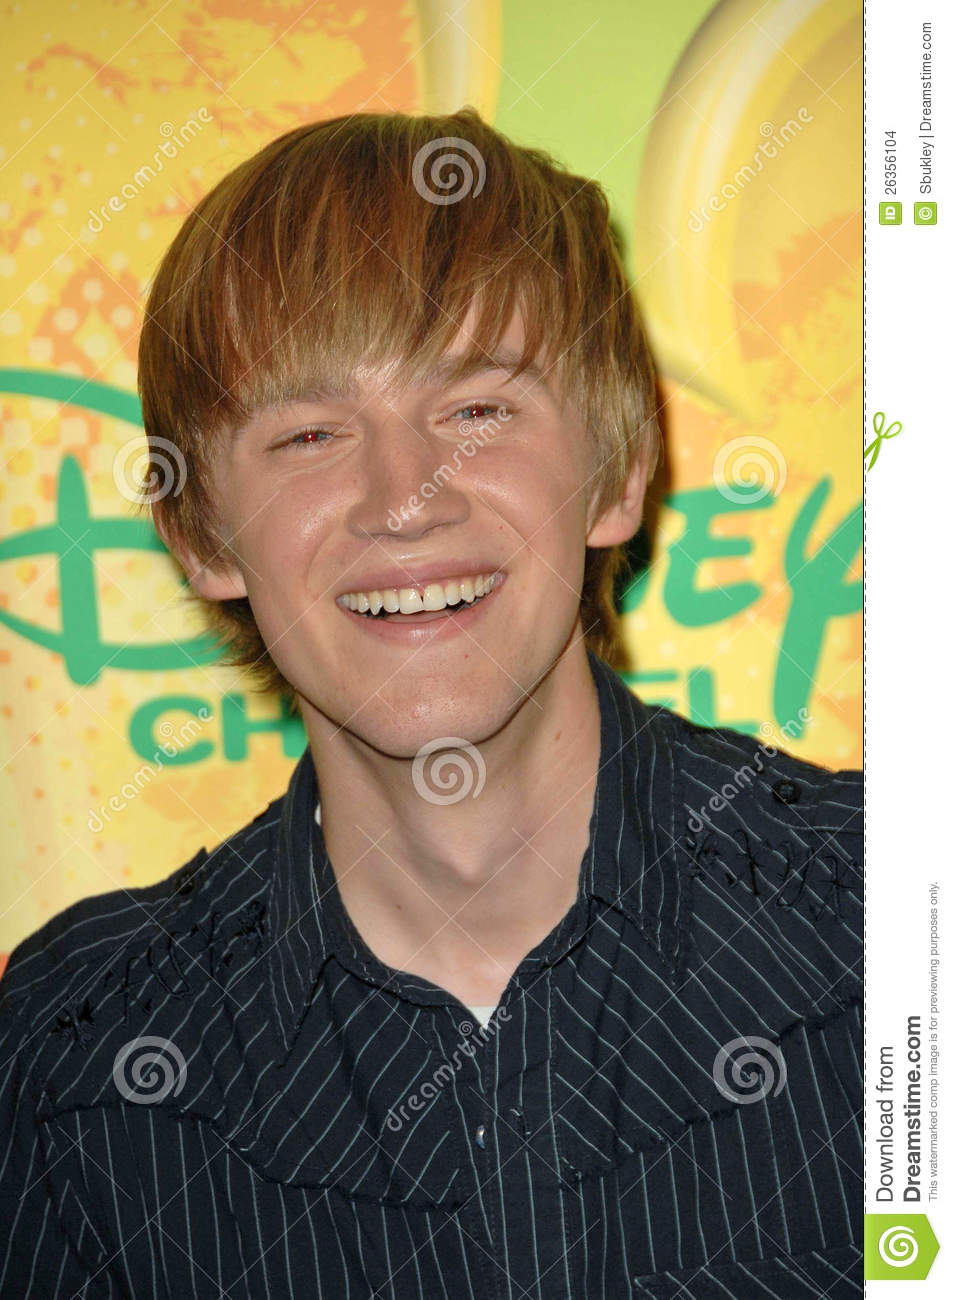 jason dolley age